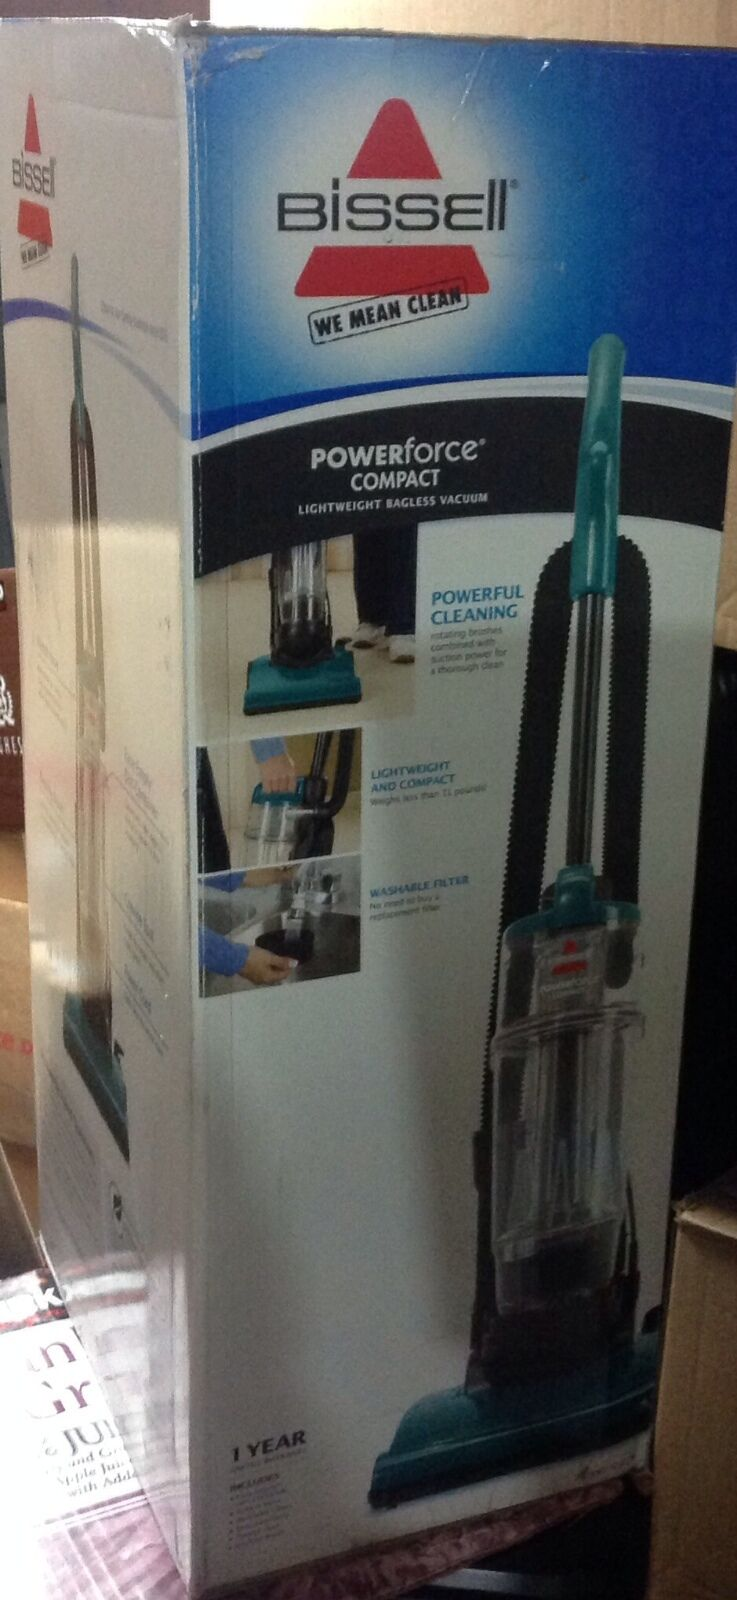 Bissell PowerForce Compact Lightweight Bagless Upright Vacuum,Green